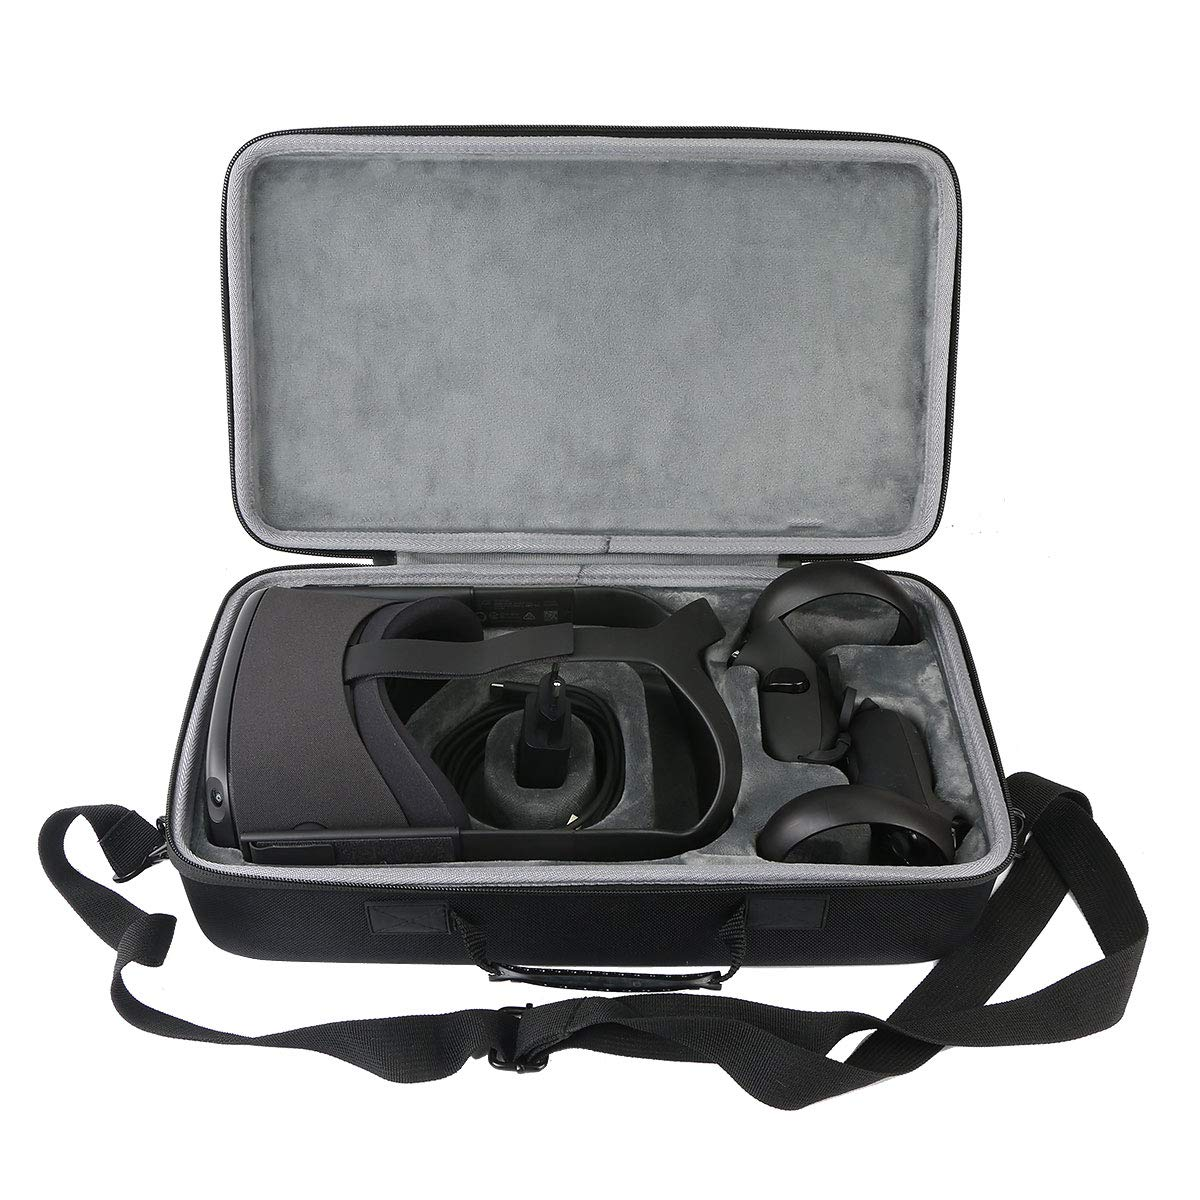 co2CREA Hard Travel Case Replacement for Oculus Quest 1 2 Advanced All-in-one VR Gaming Headset